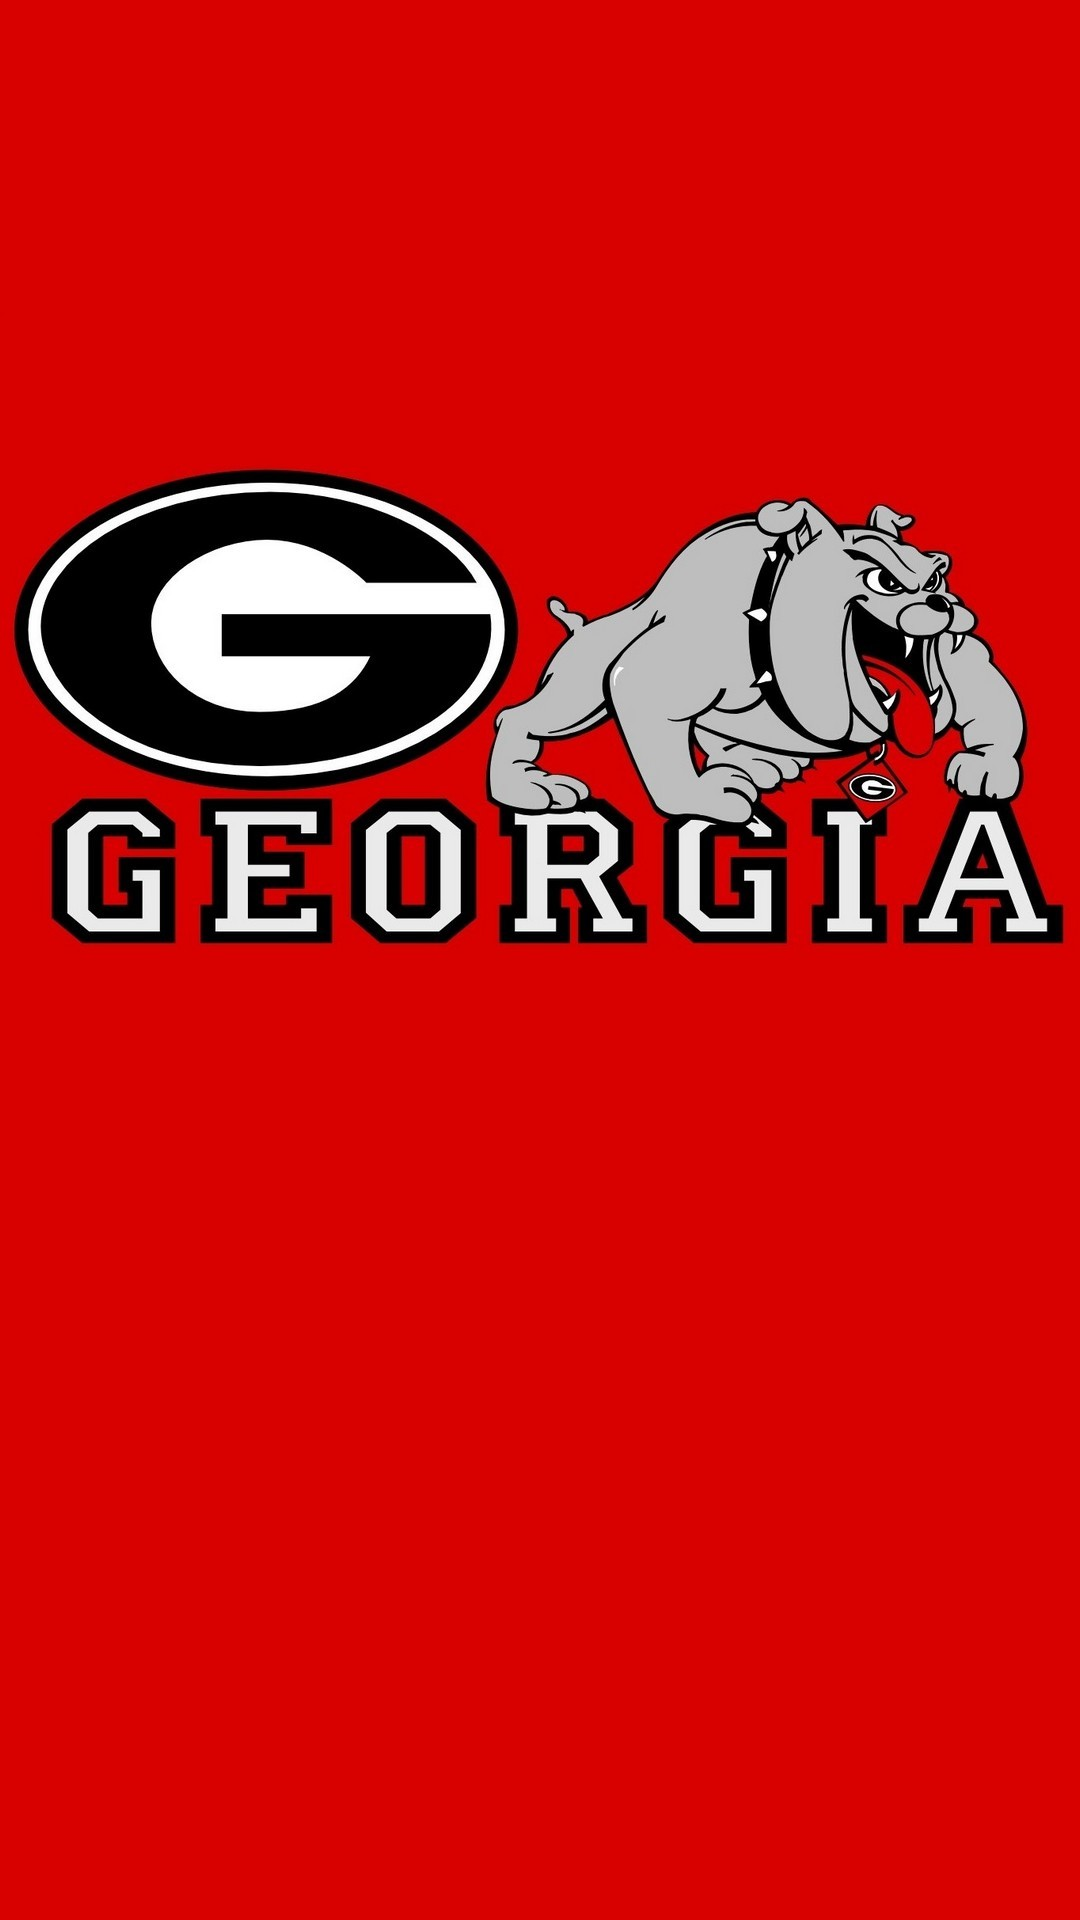 1080x1920 HD Georgia Bulldogs iPhone Wallpaper resolution 1080x1920